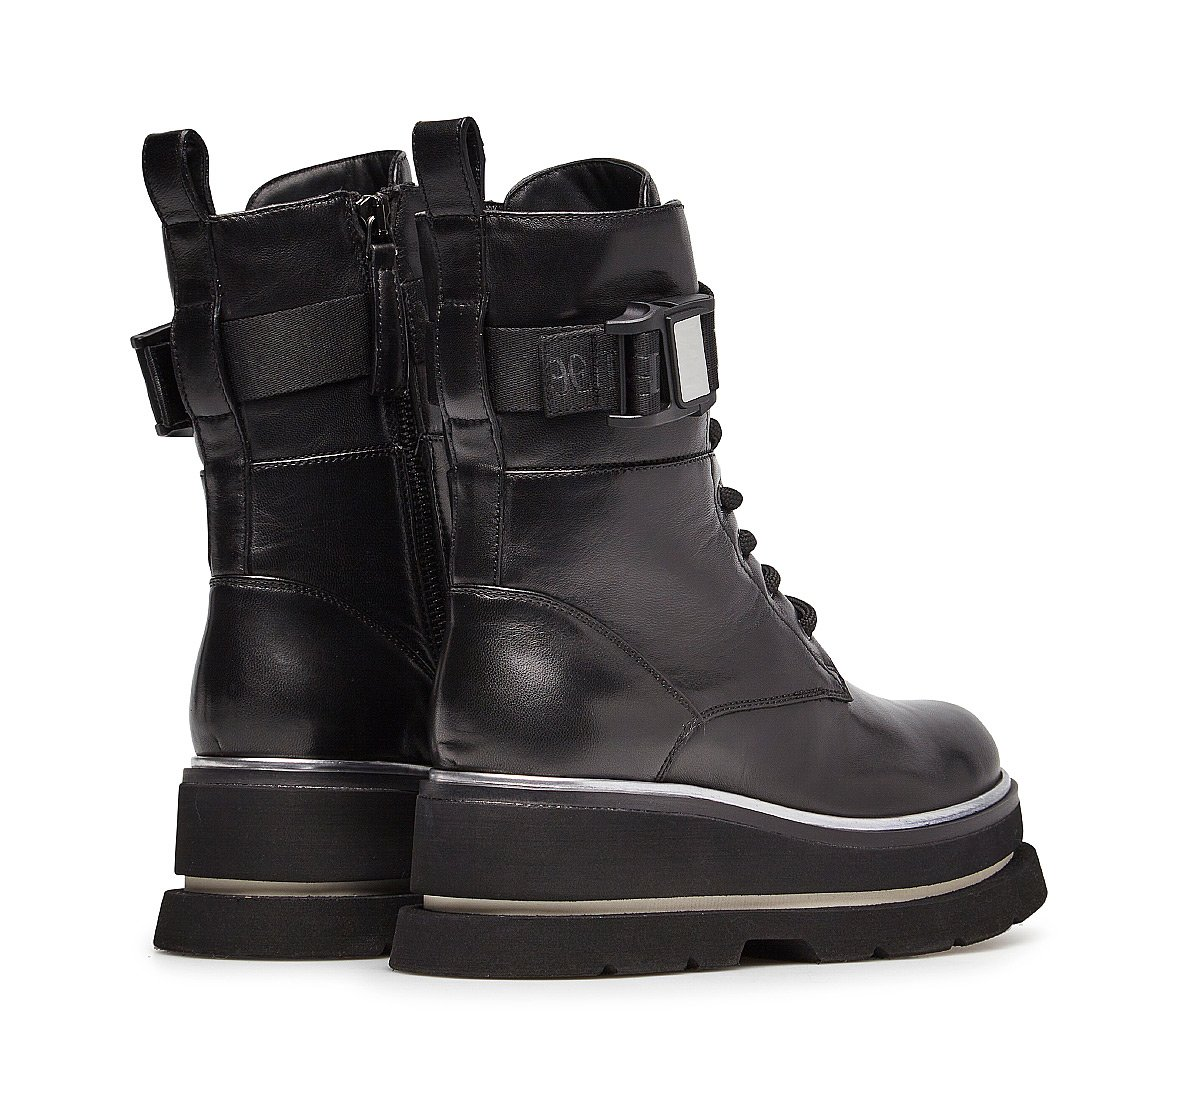 Soft nappa leather ankle boots